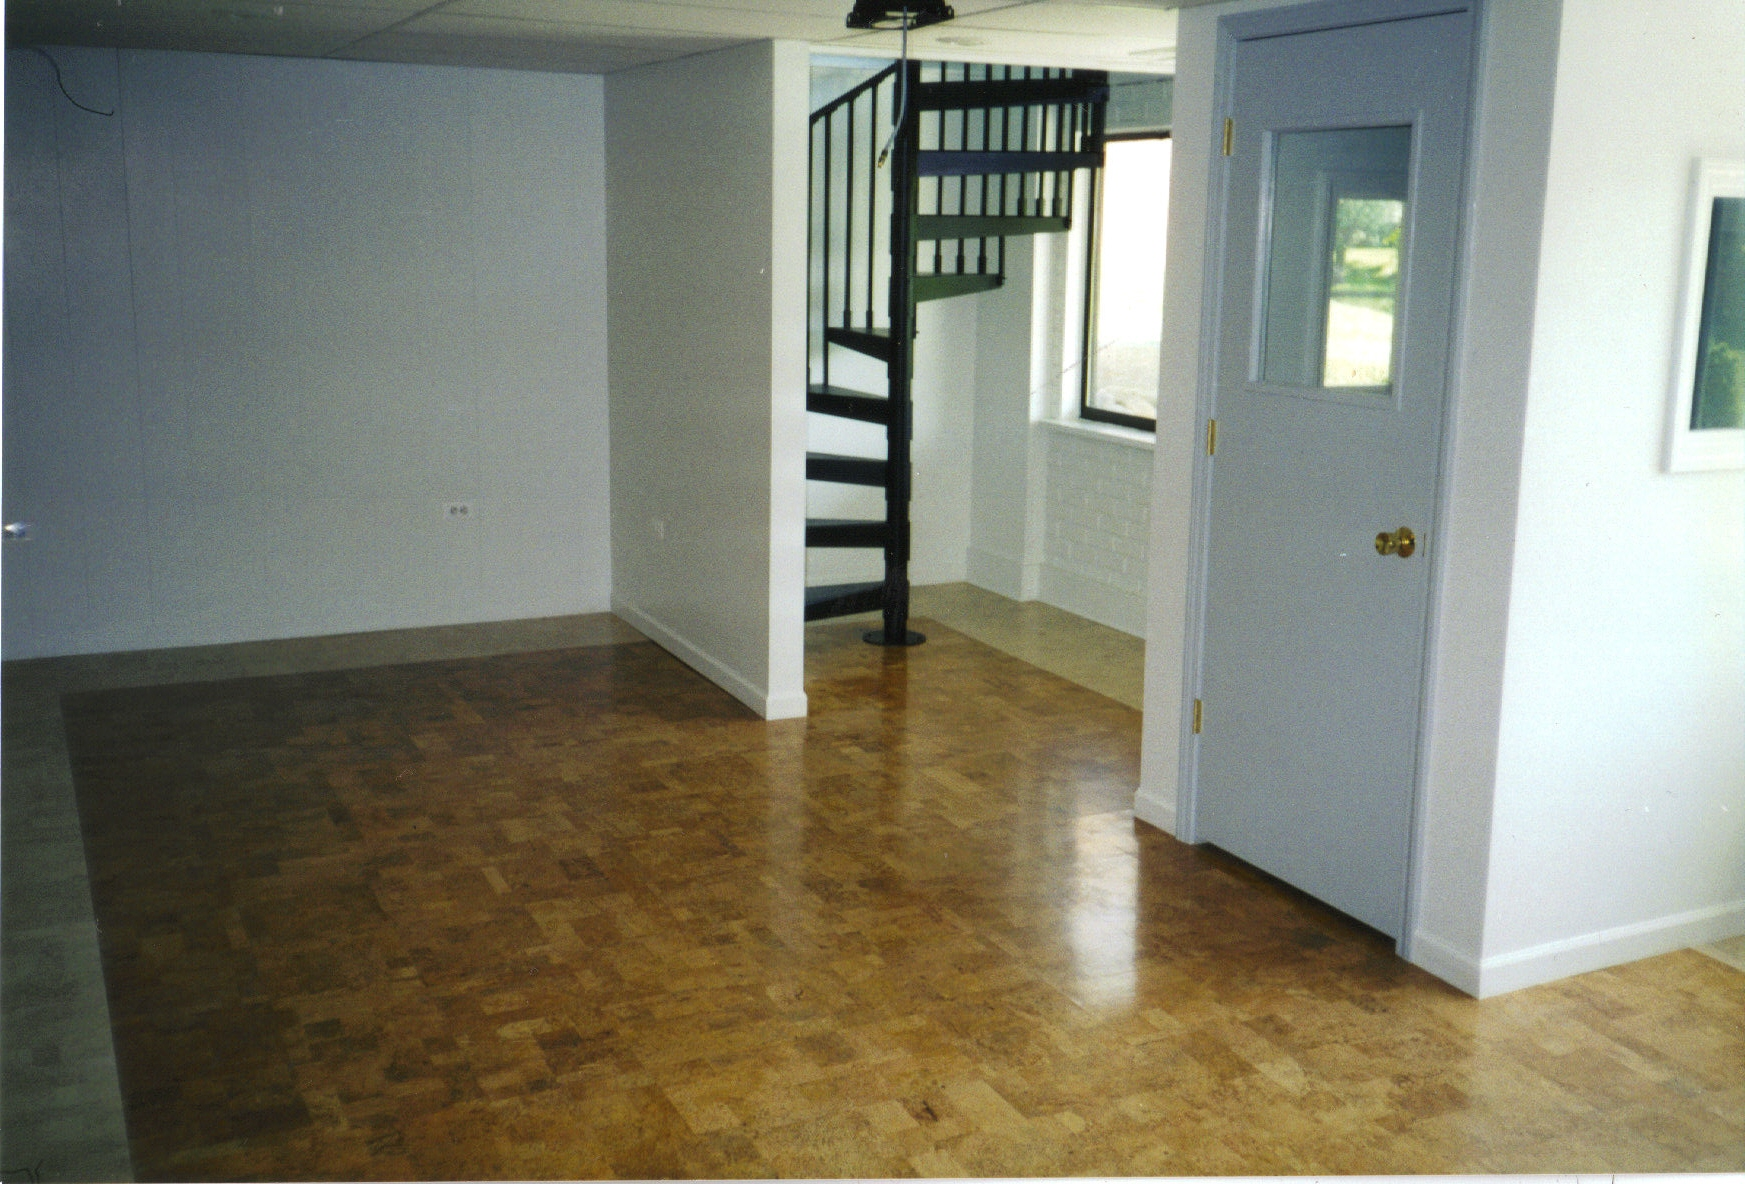 Basement Floor Paint Options (Image 2 of 10)